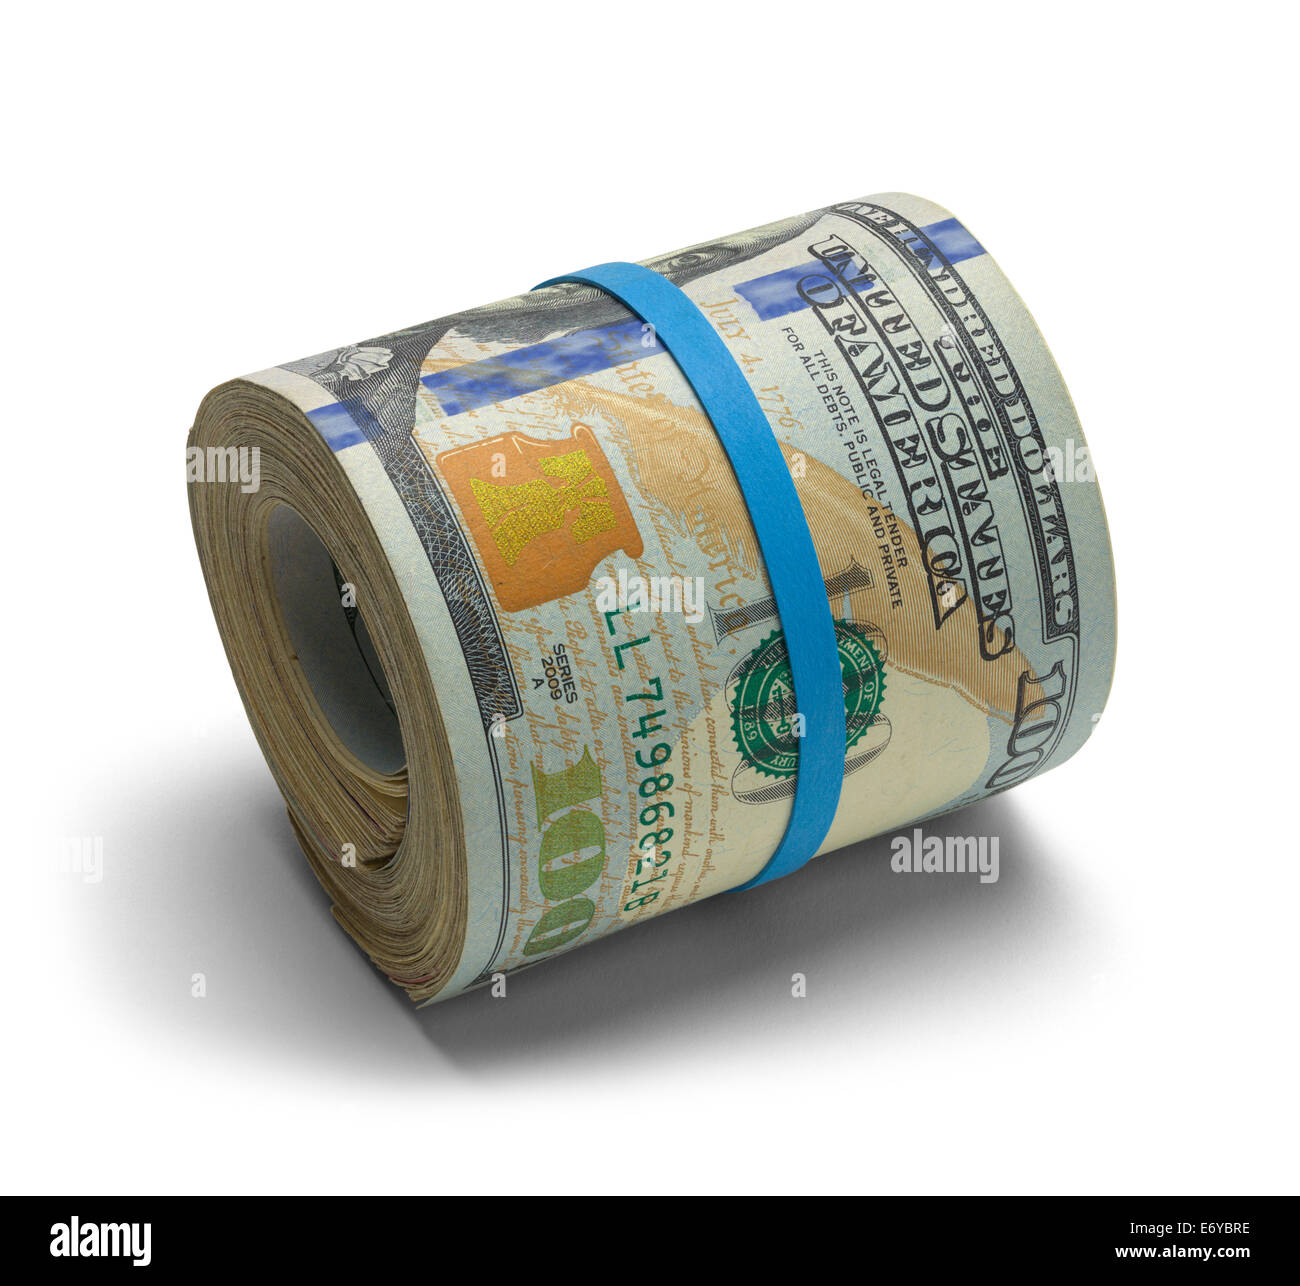 Hundred dollar bills rolled up with rubberband. - Stock Image